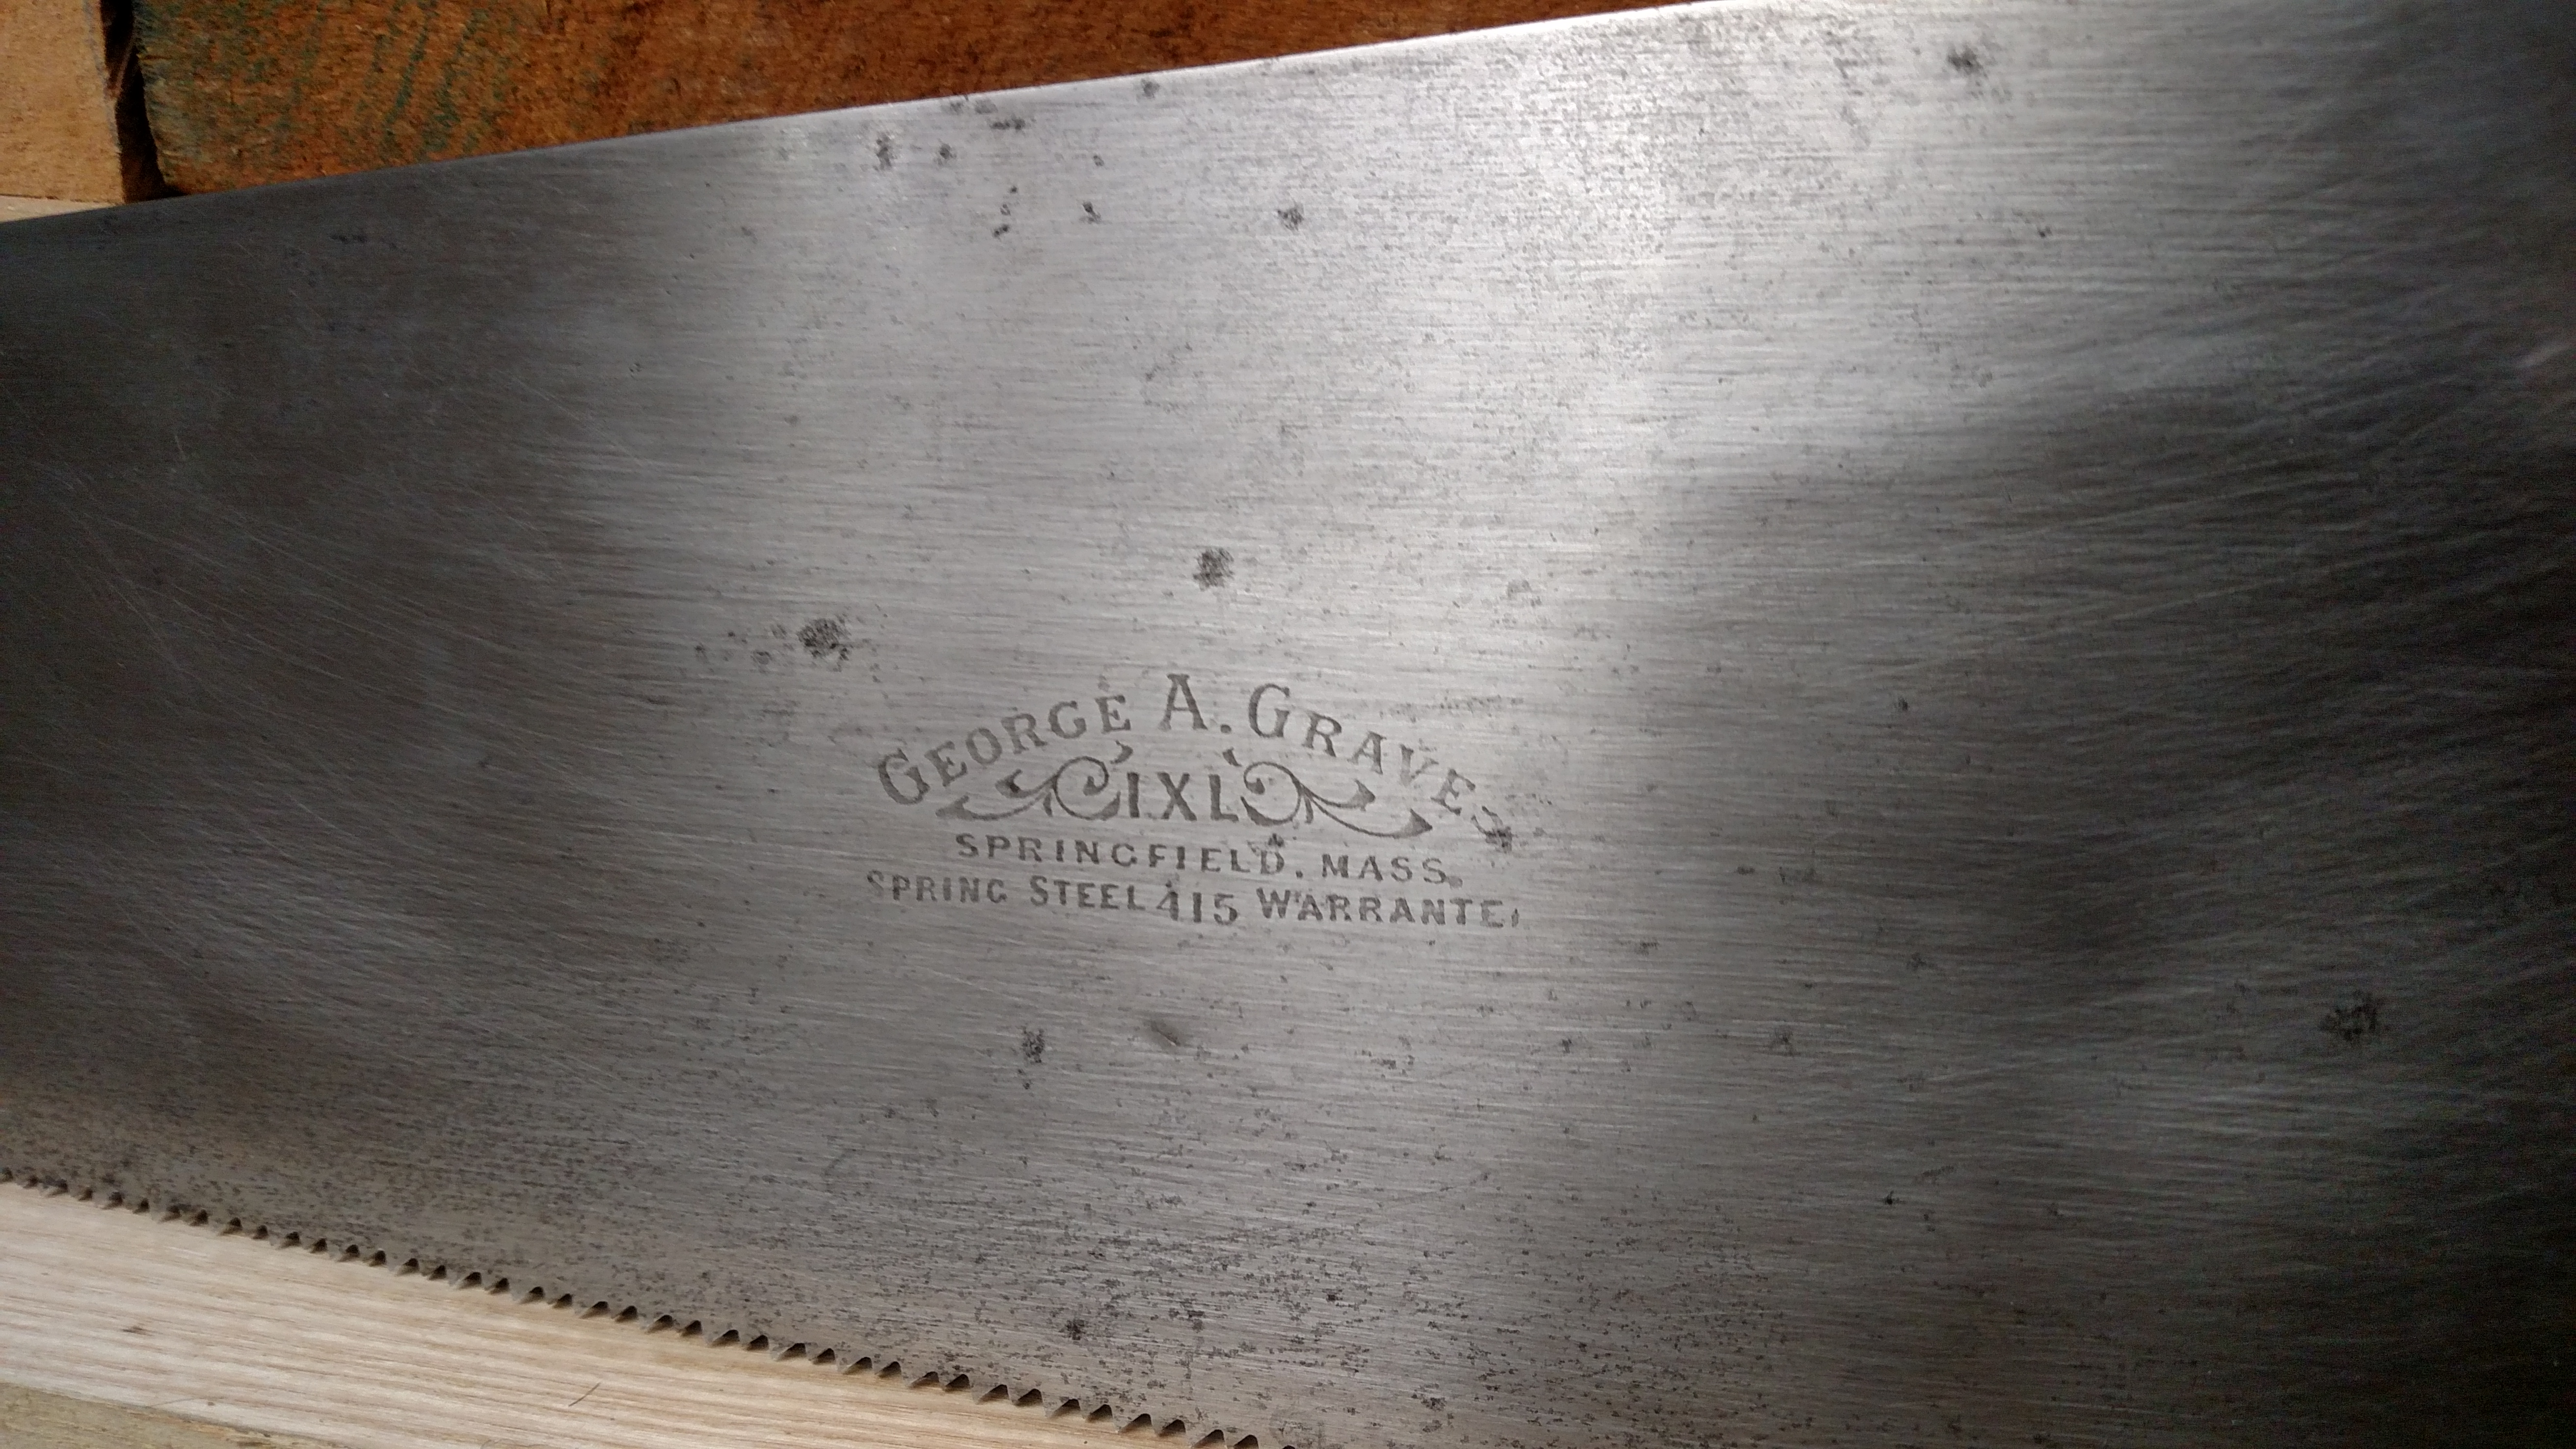 George Graves handsaw